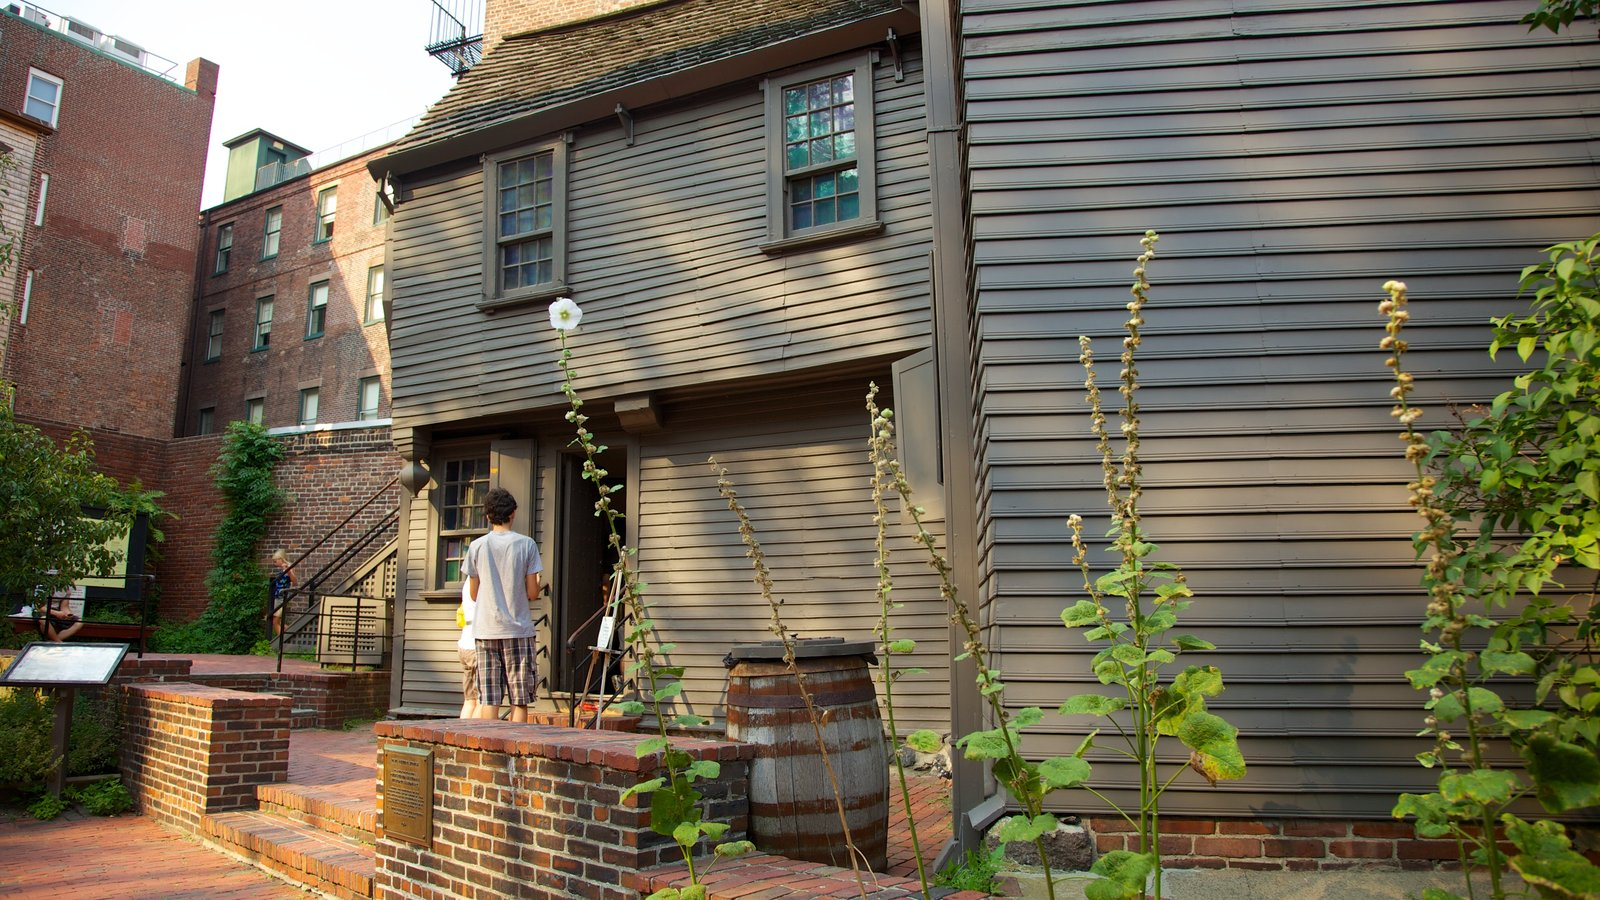 Paul Revere House featuring heritage architecture and a house as well as an individual male